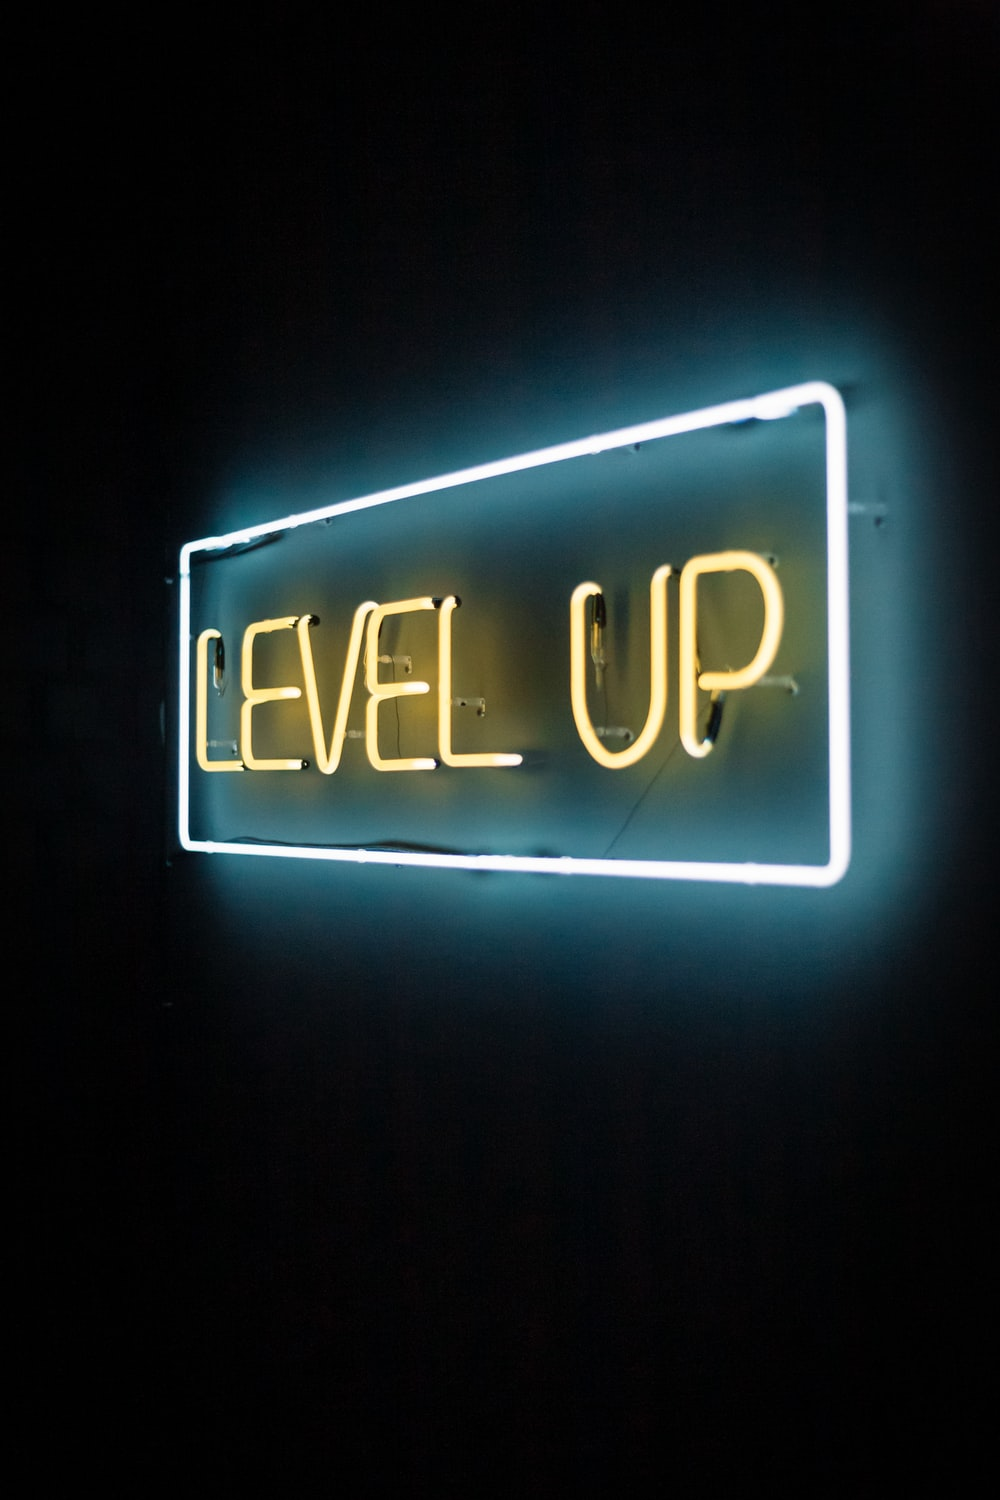 yellow and white level up LED lights